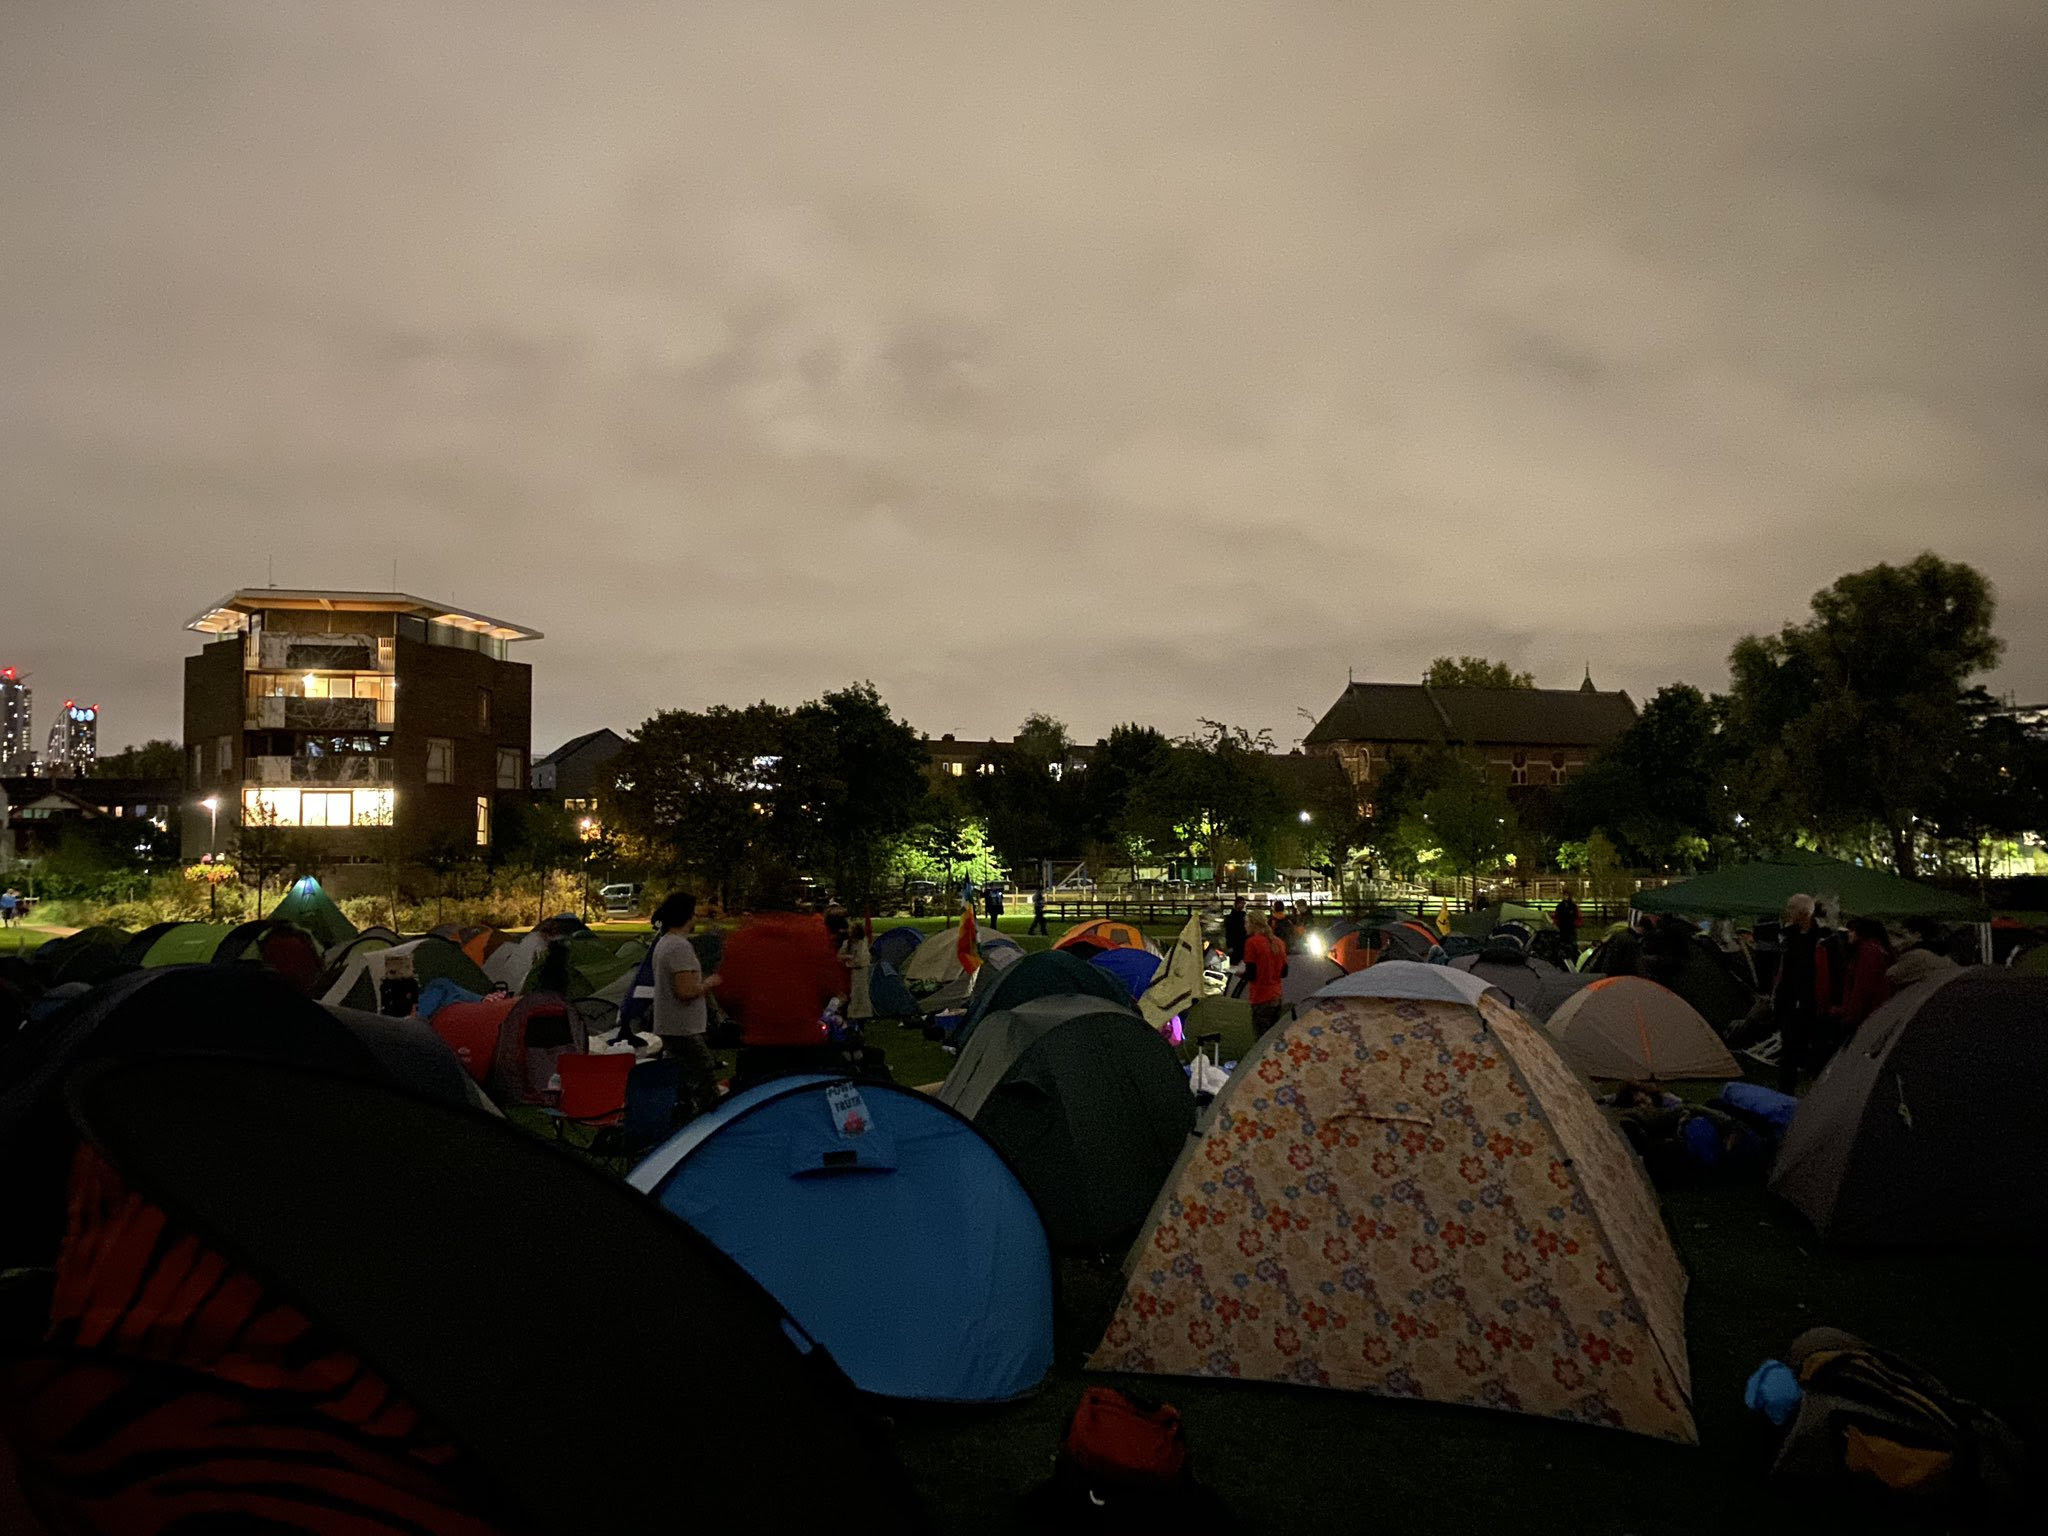 Around 30 tents in a field (Vauxhall Pleasure Gardens) at dusk.